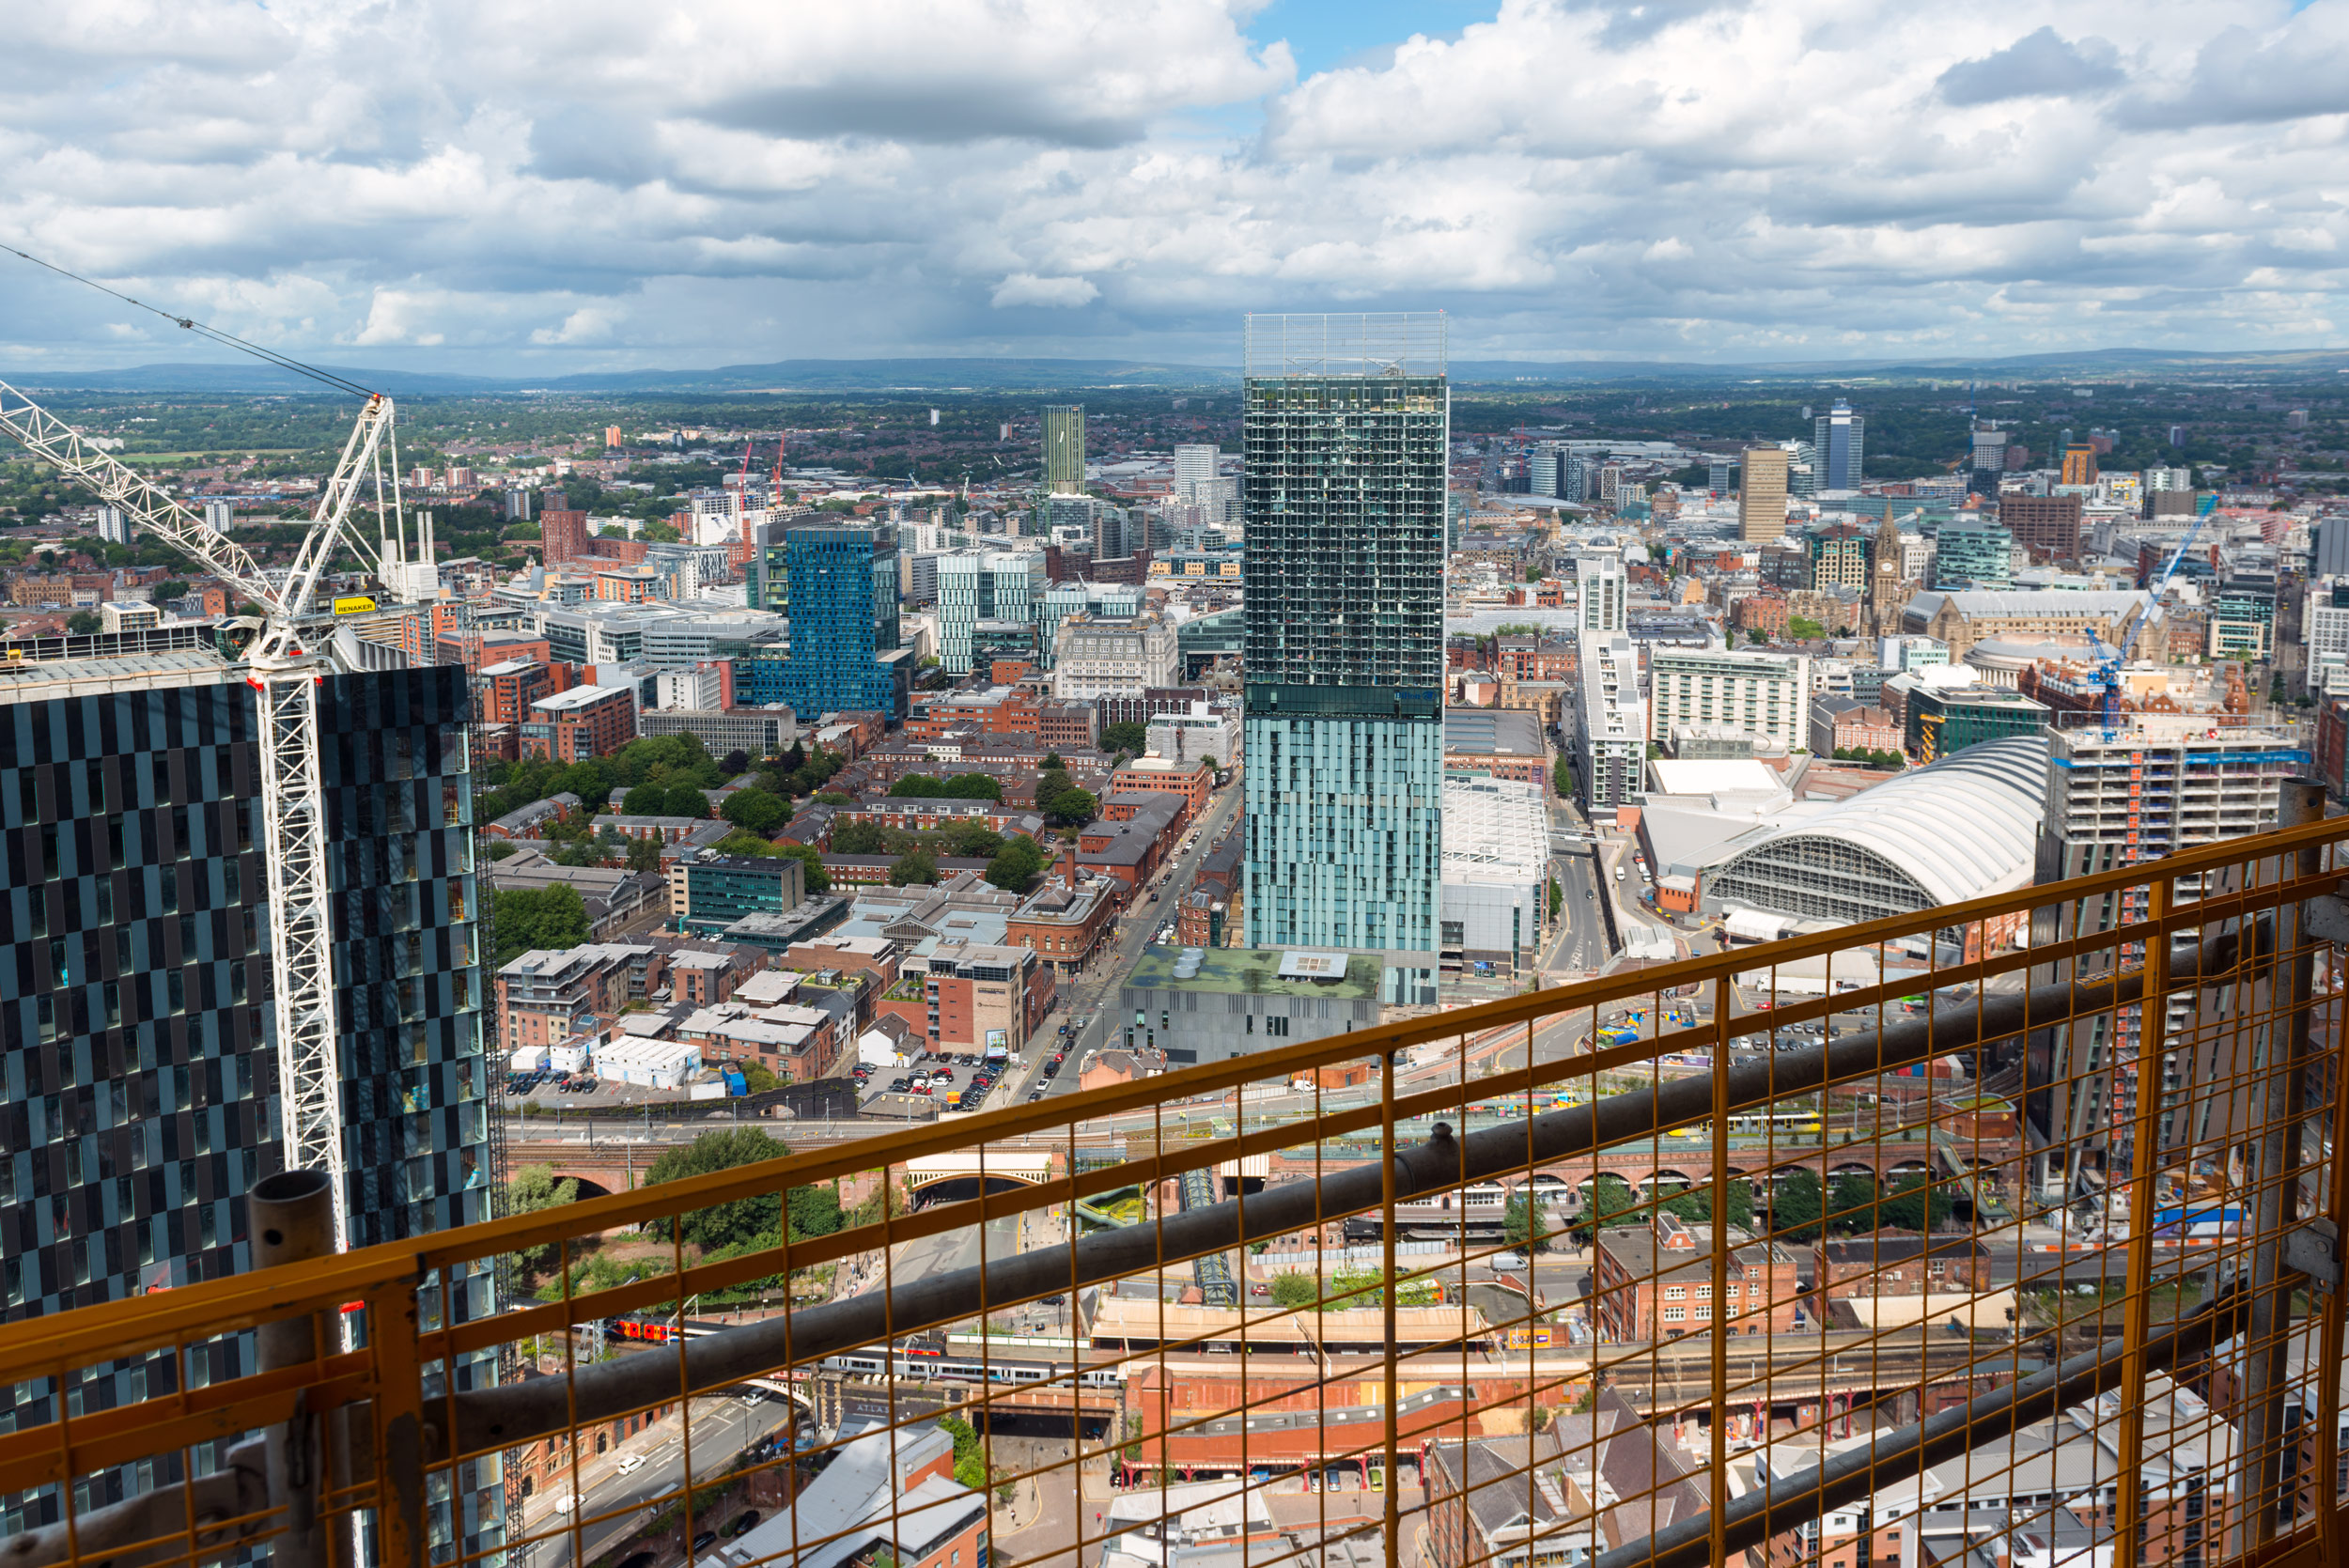 Manchester city centre skyline view from the top of a new skyscraper. Deansgate Square Manchester - photographs from the top floor by manchesterphotographer.com